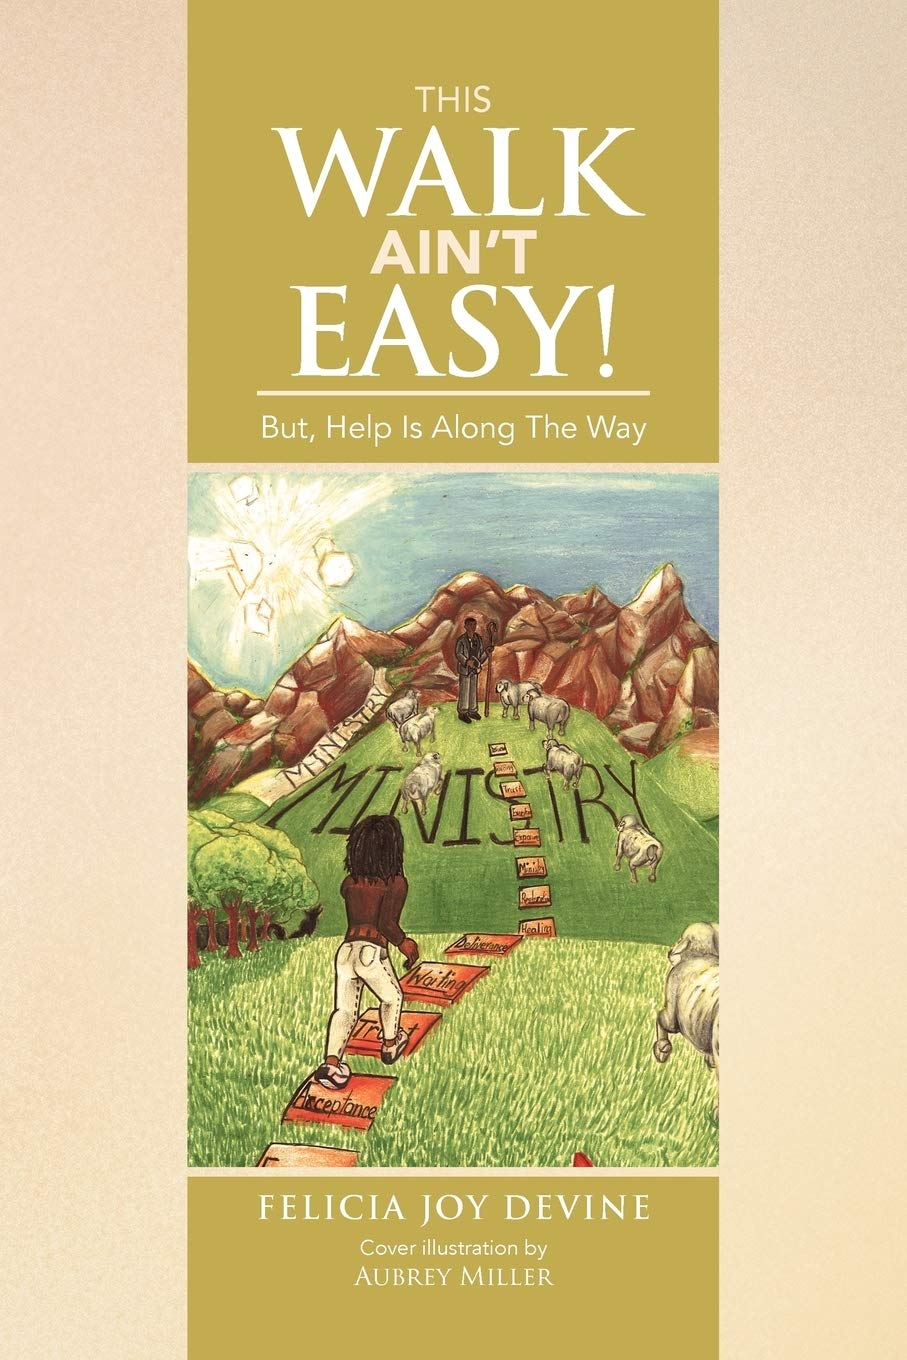 This Walk Ain't Easy!: But, Help Is Along the Way